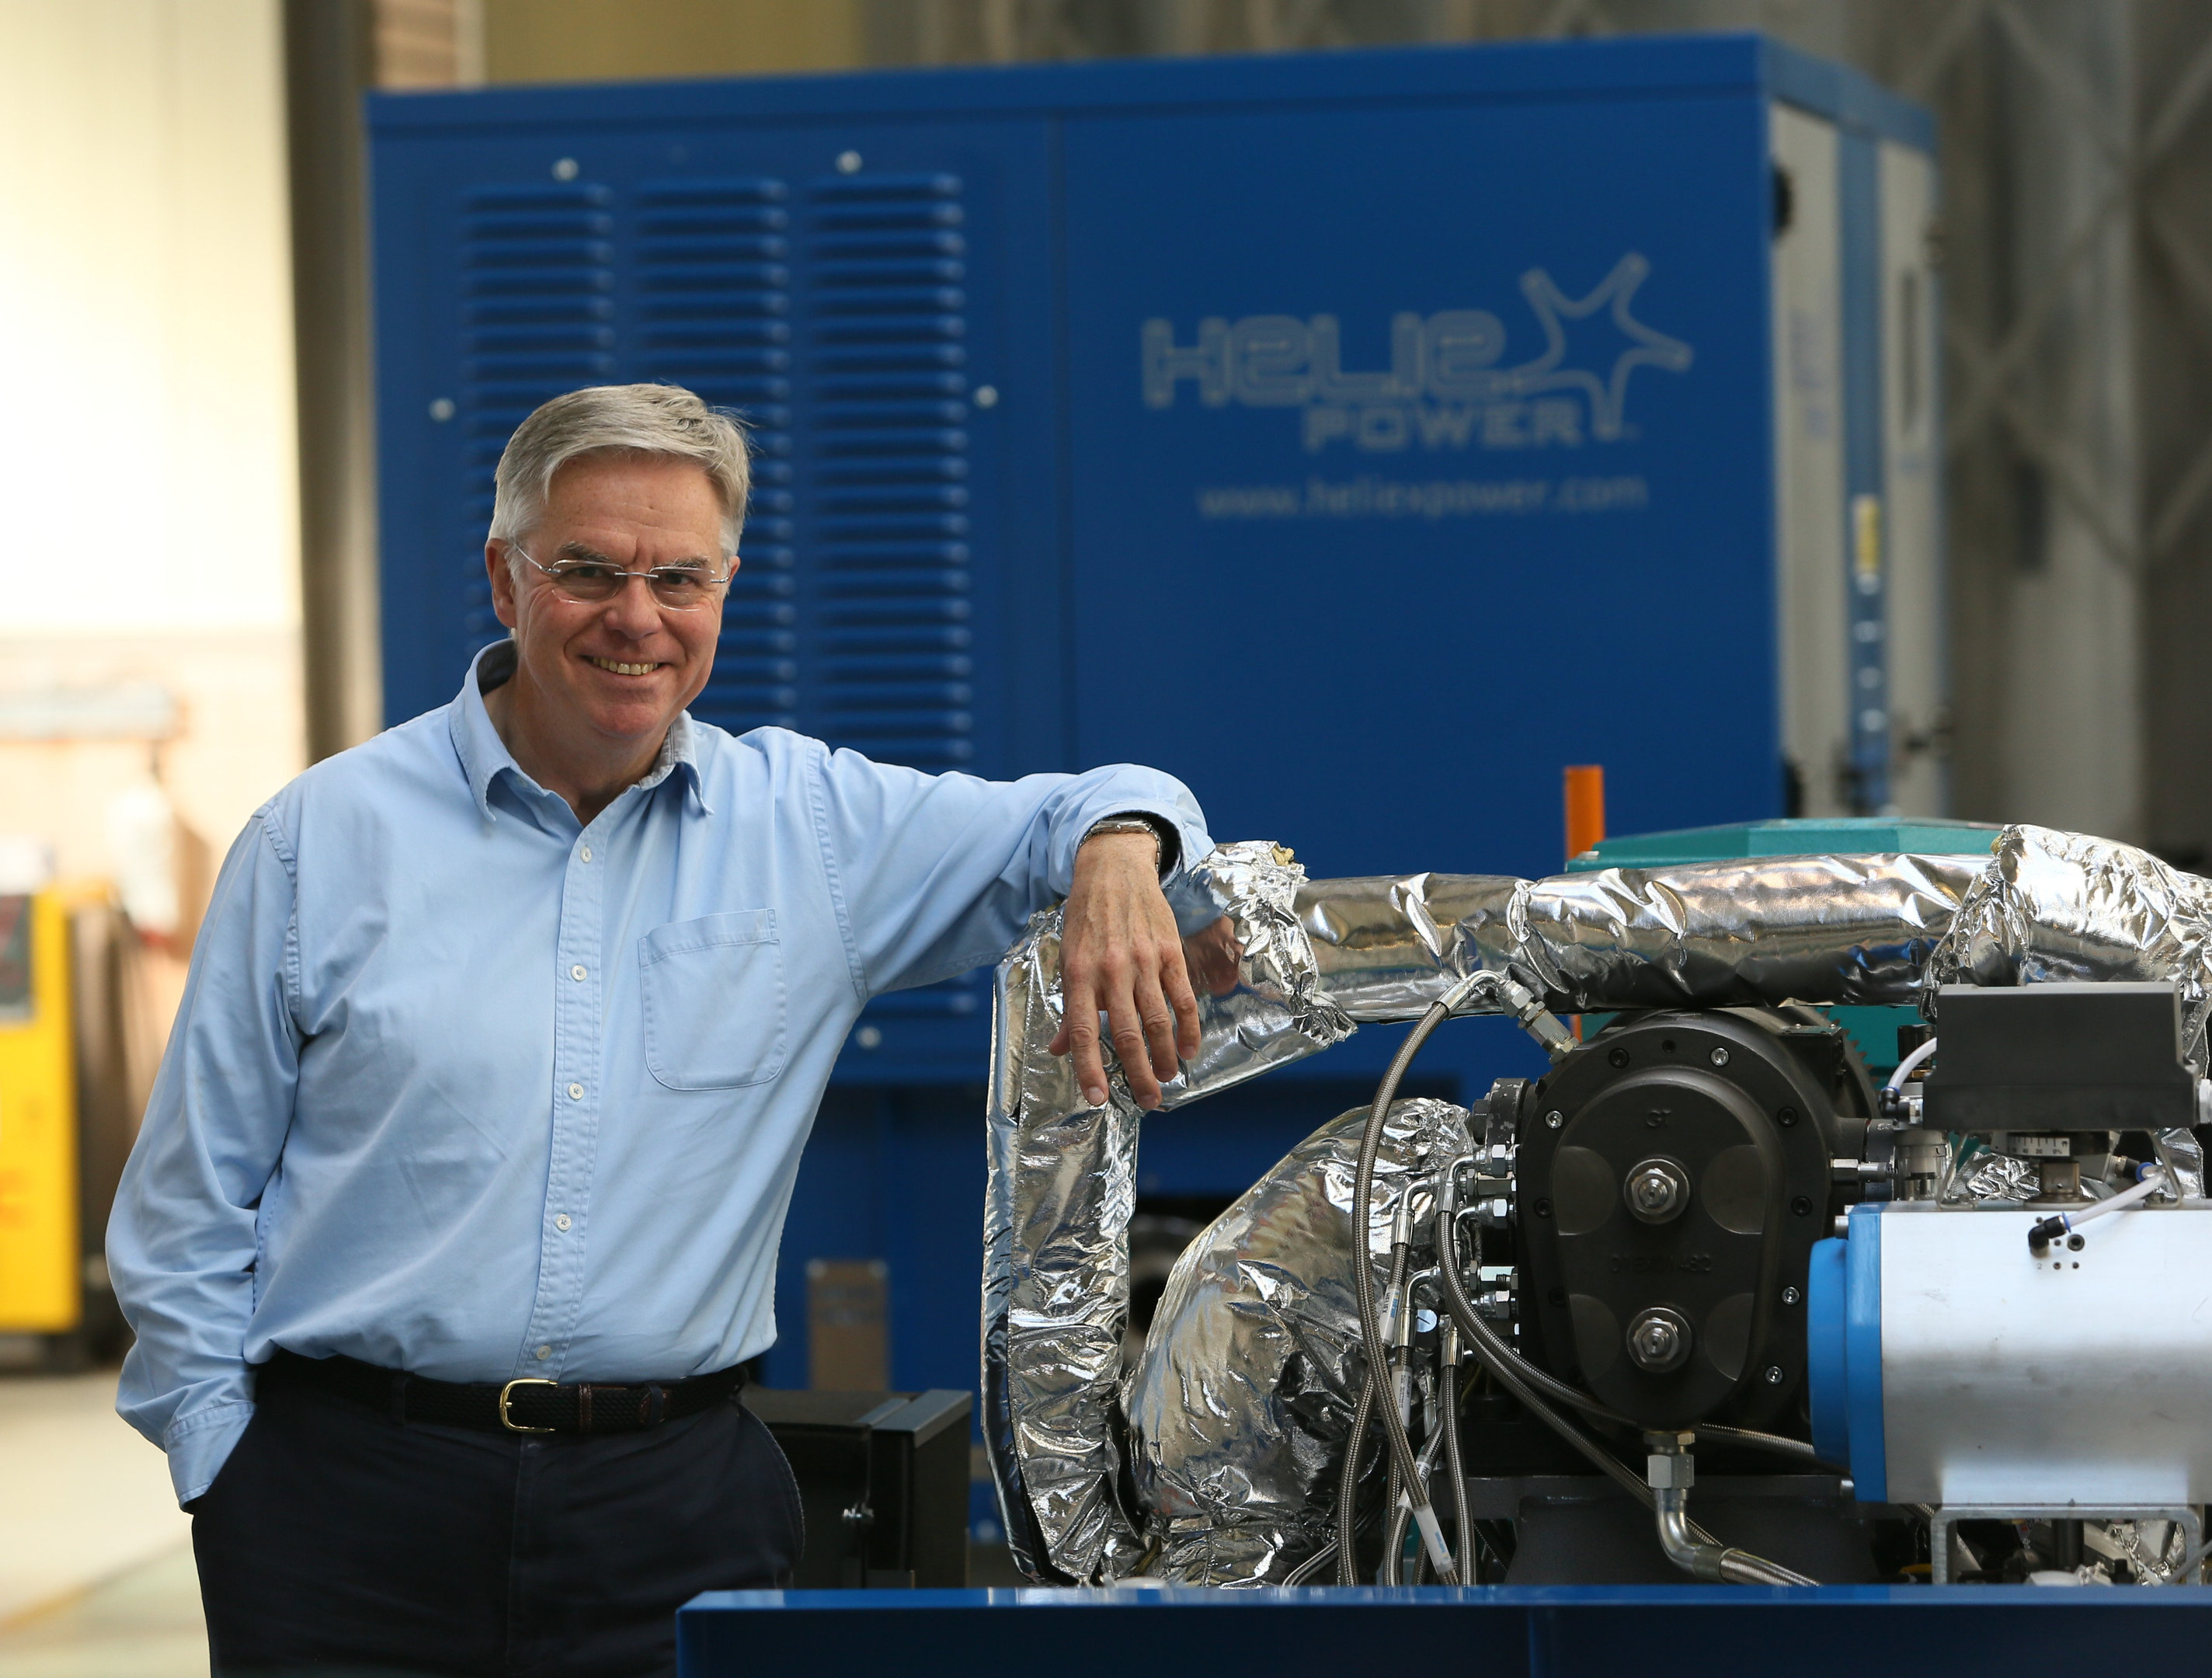 Professor Dan Wright, founder of Heliex Power.